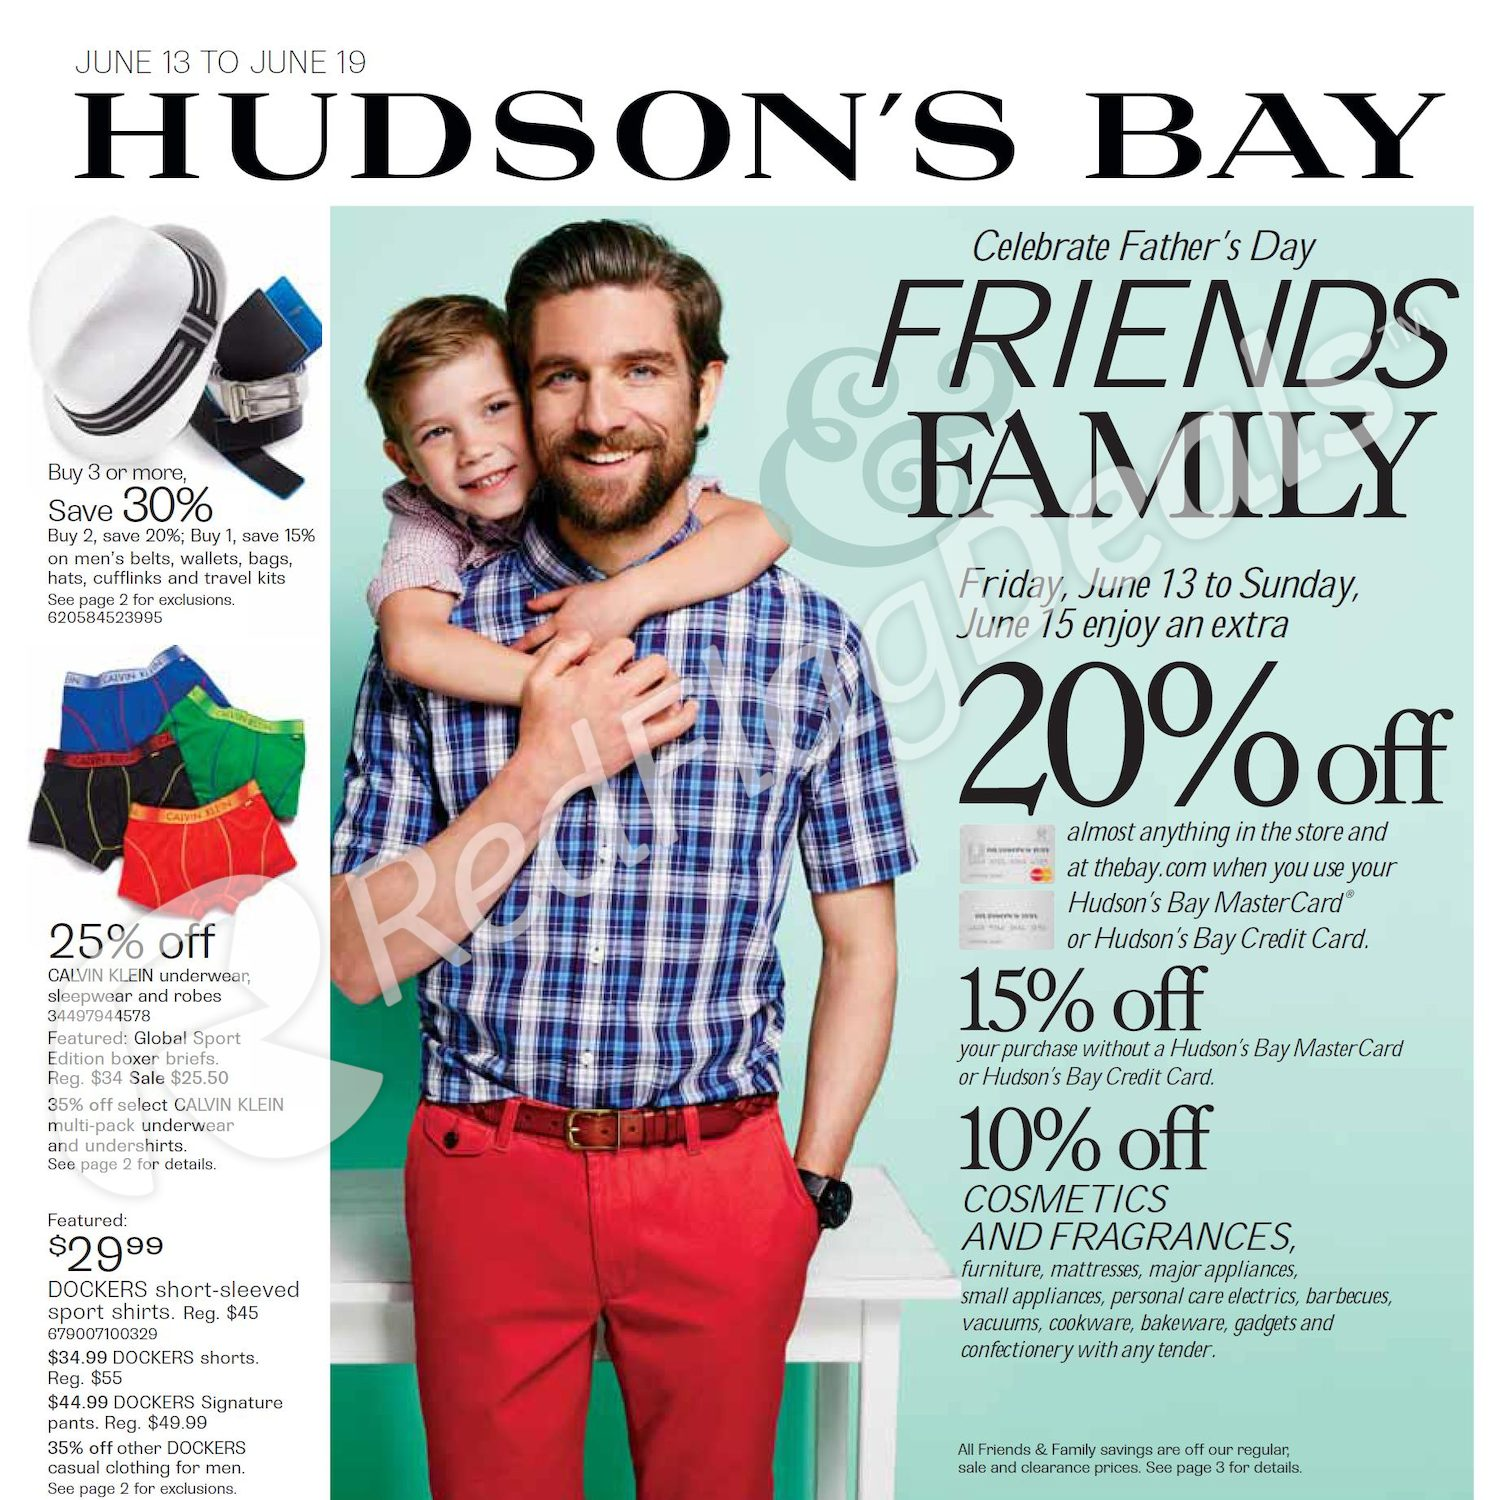 dd877c1aeec2 The Bay Weekly Flyer - Weekly Flyer - Celebrate Father's Day - Jun 13 – 19  - RedFlagDeals.com